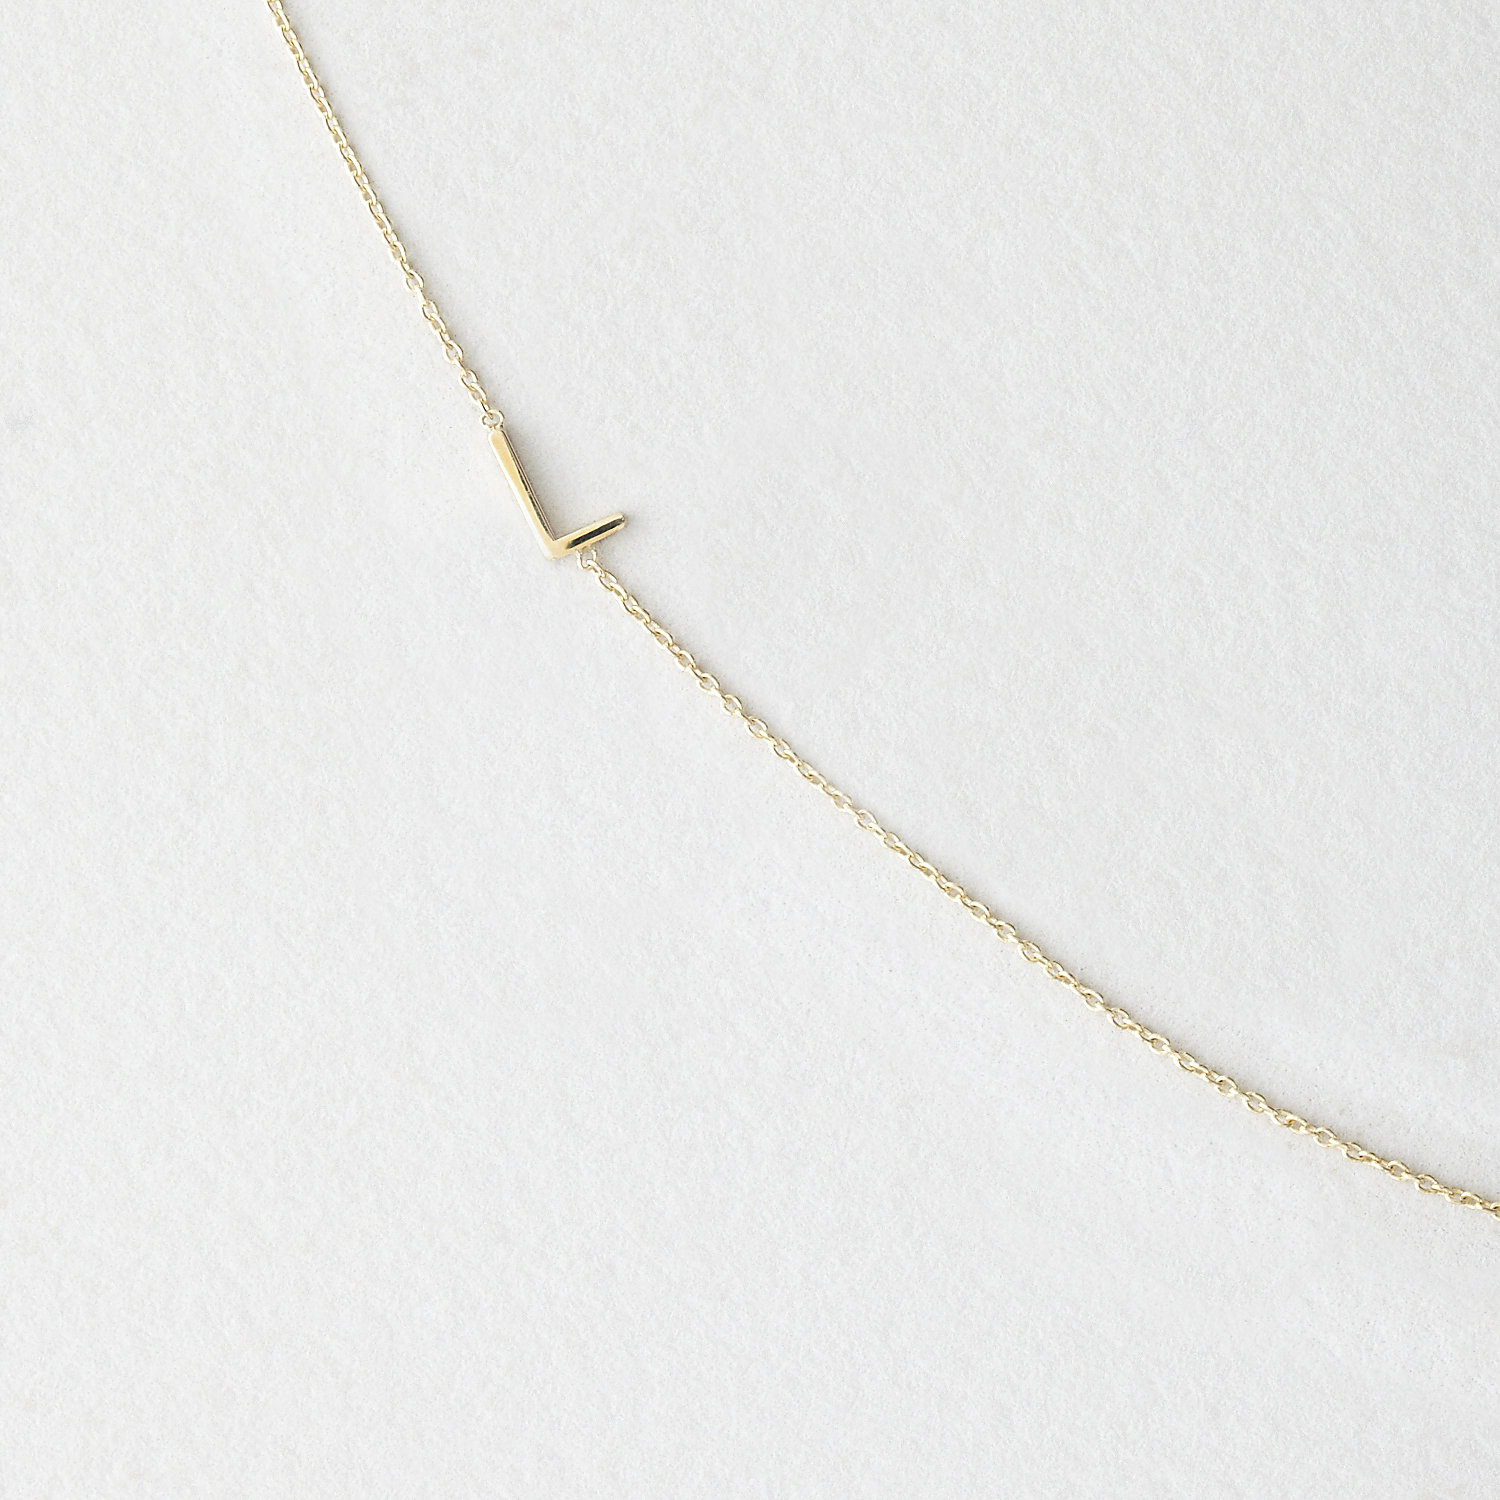 Asymmetrical Mini Letter Necklace - L